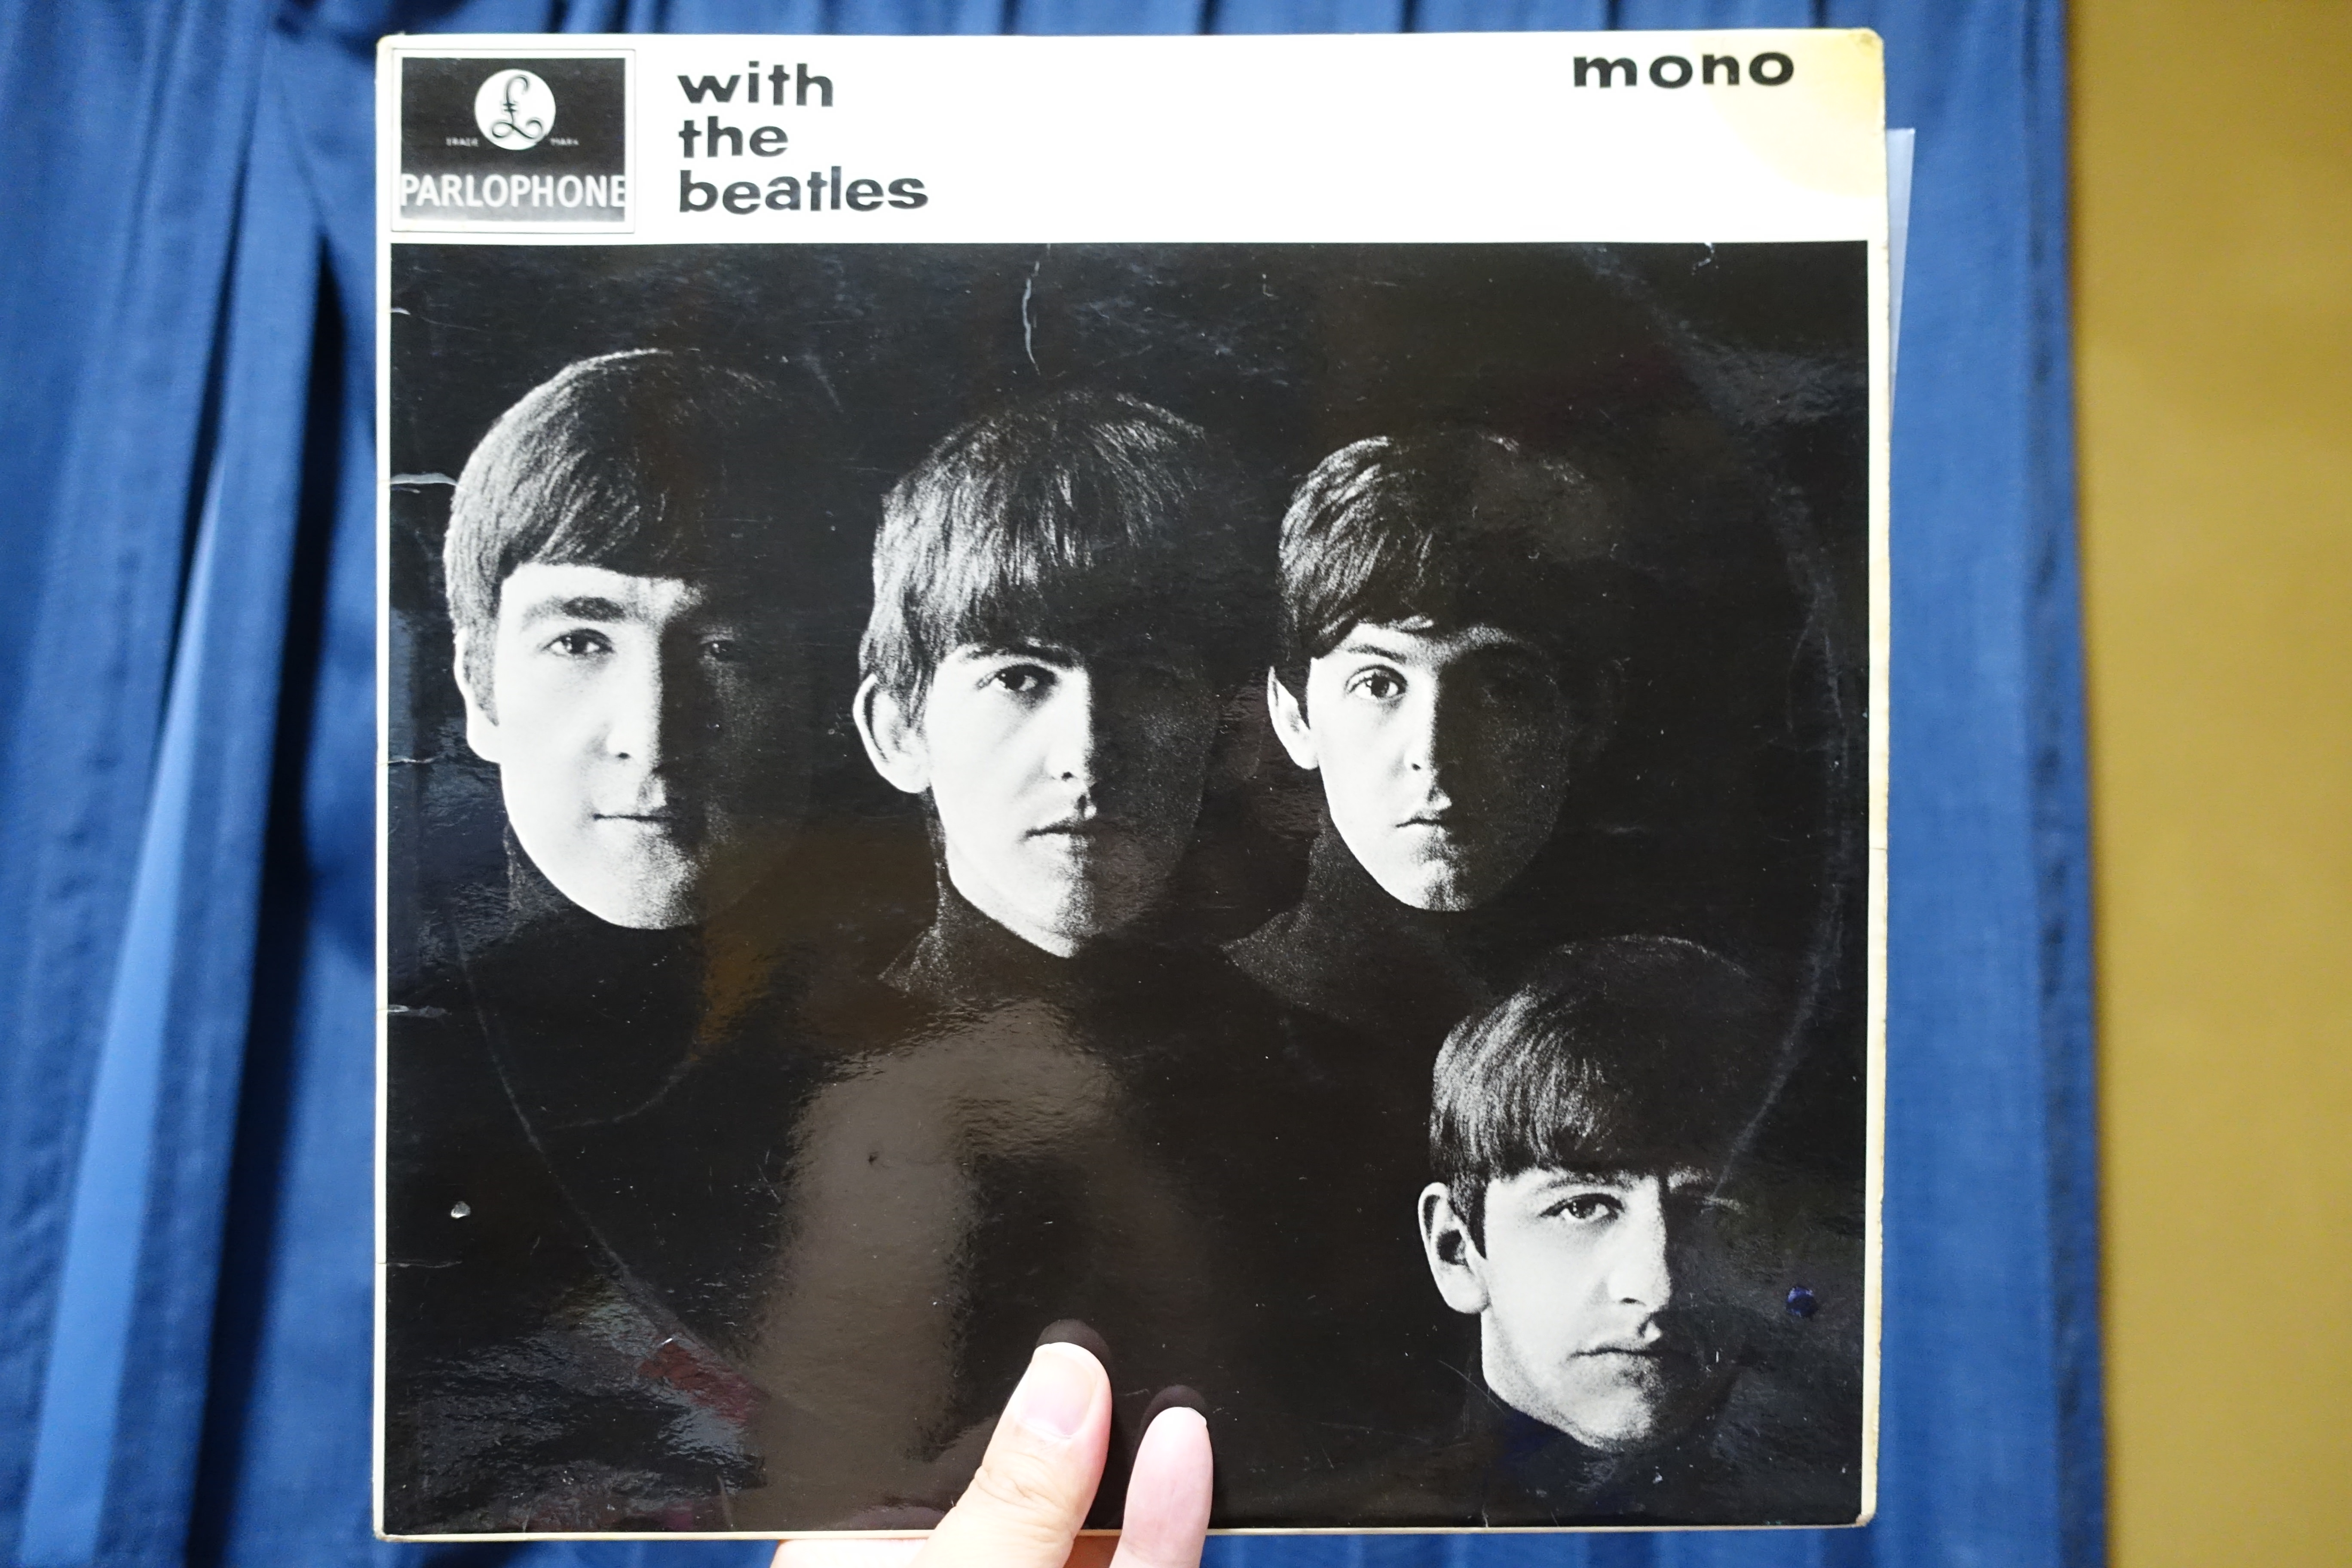 「with the beatles」UK MONOマトリクス7N